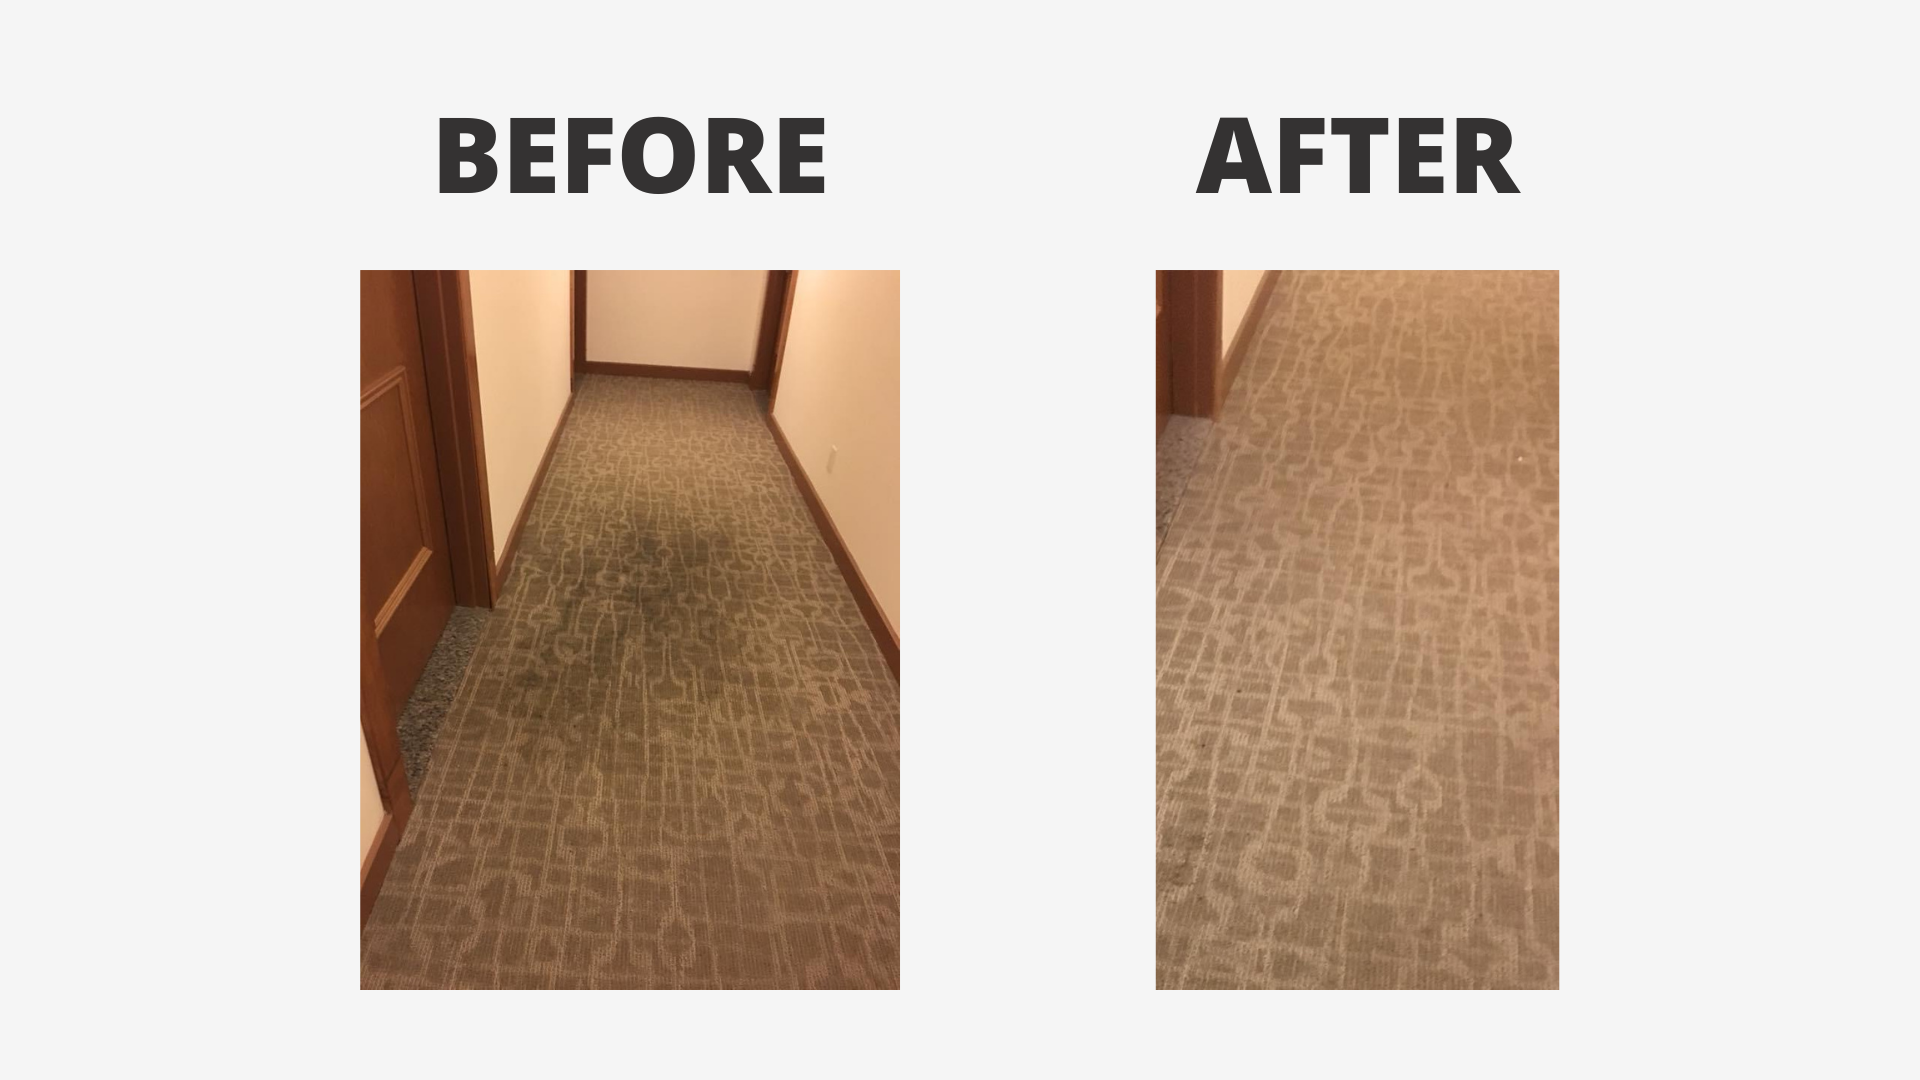 before and after cleaning image of office floor